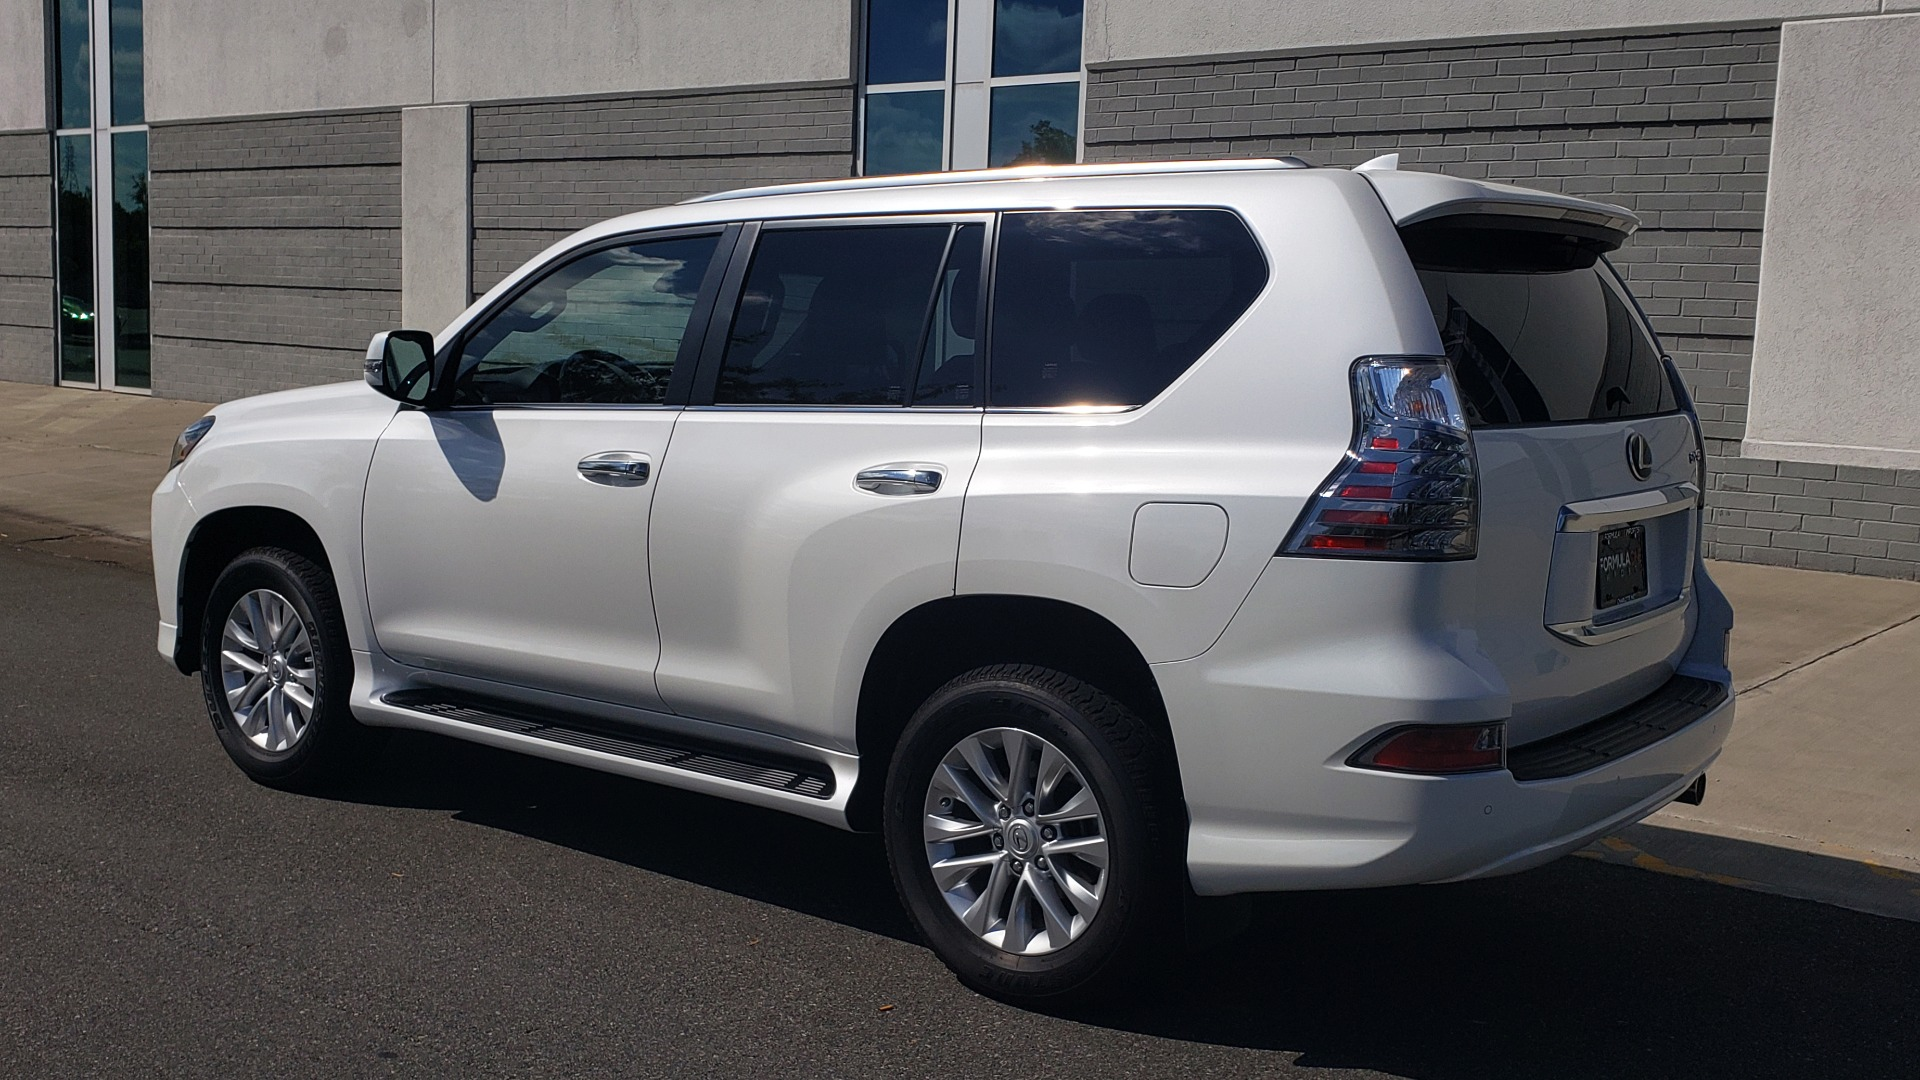 Used 2021 Lexus GX 460 PREMIUM / AWD / NAV / SUNROOF / 3-ROW / REARVIEW for sale Sold at Formula Imports in Charlotte NC 28227 5